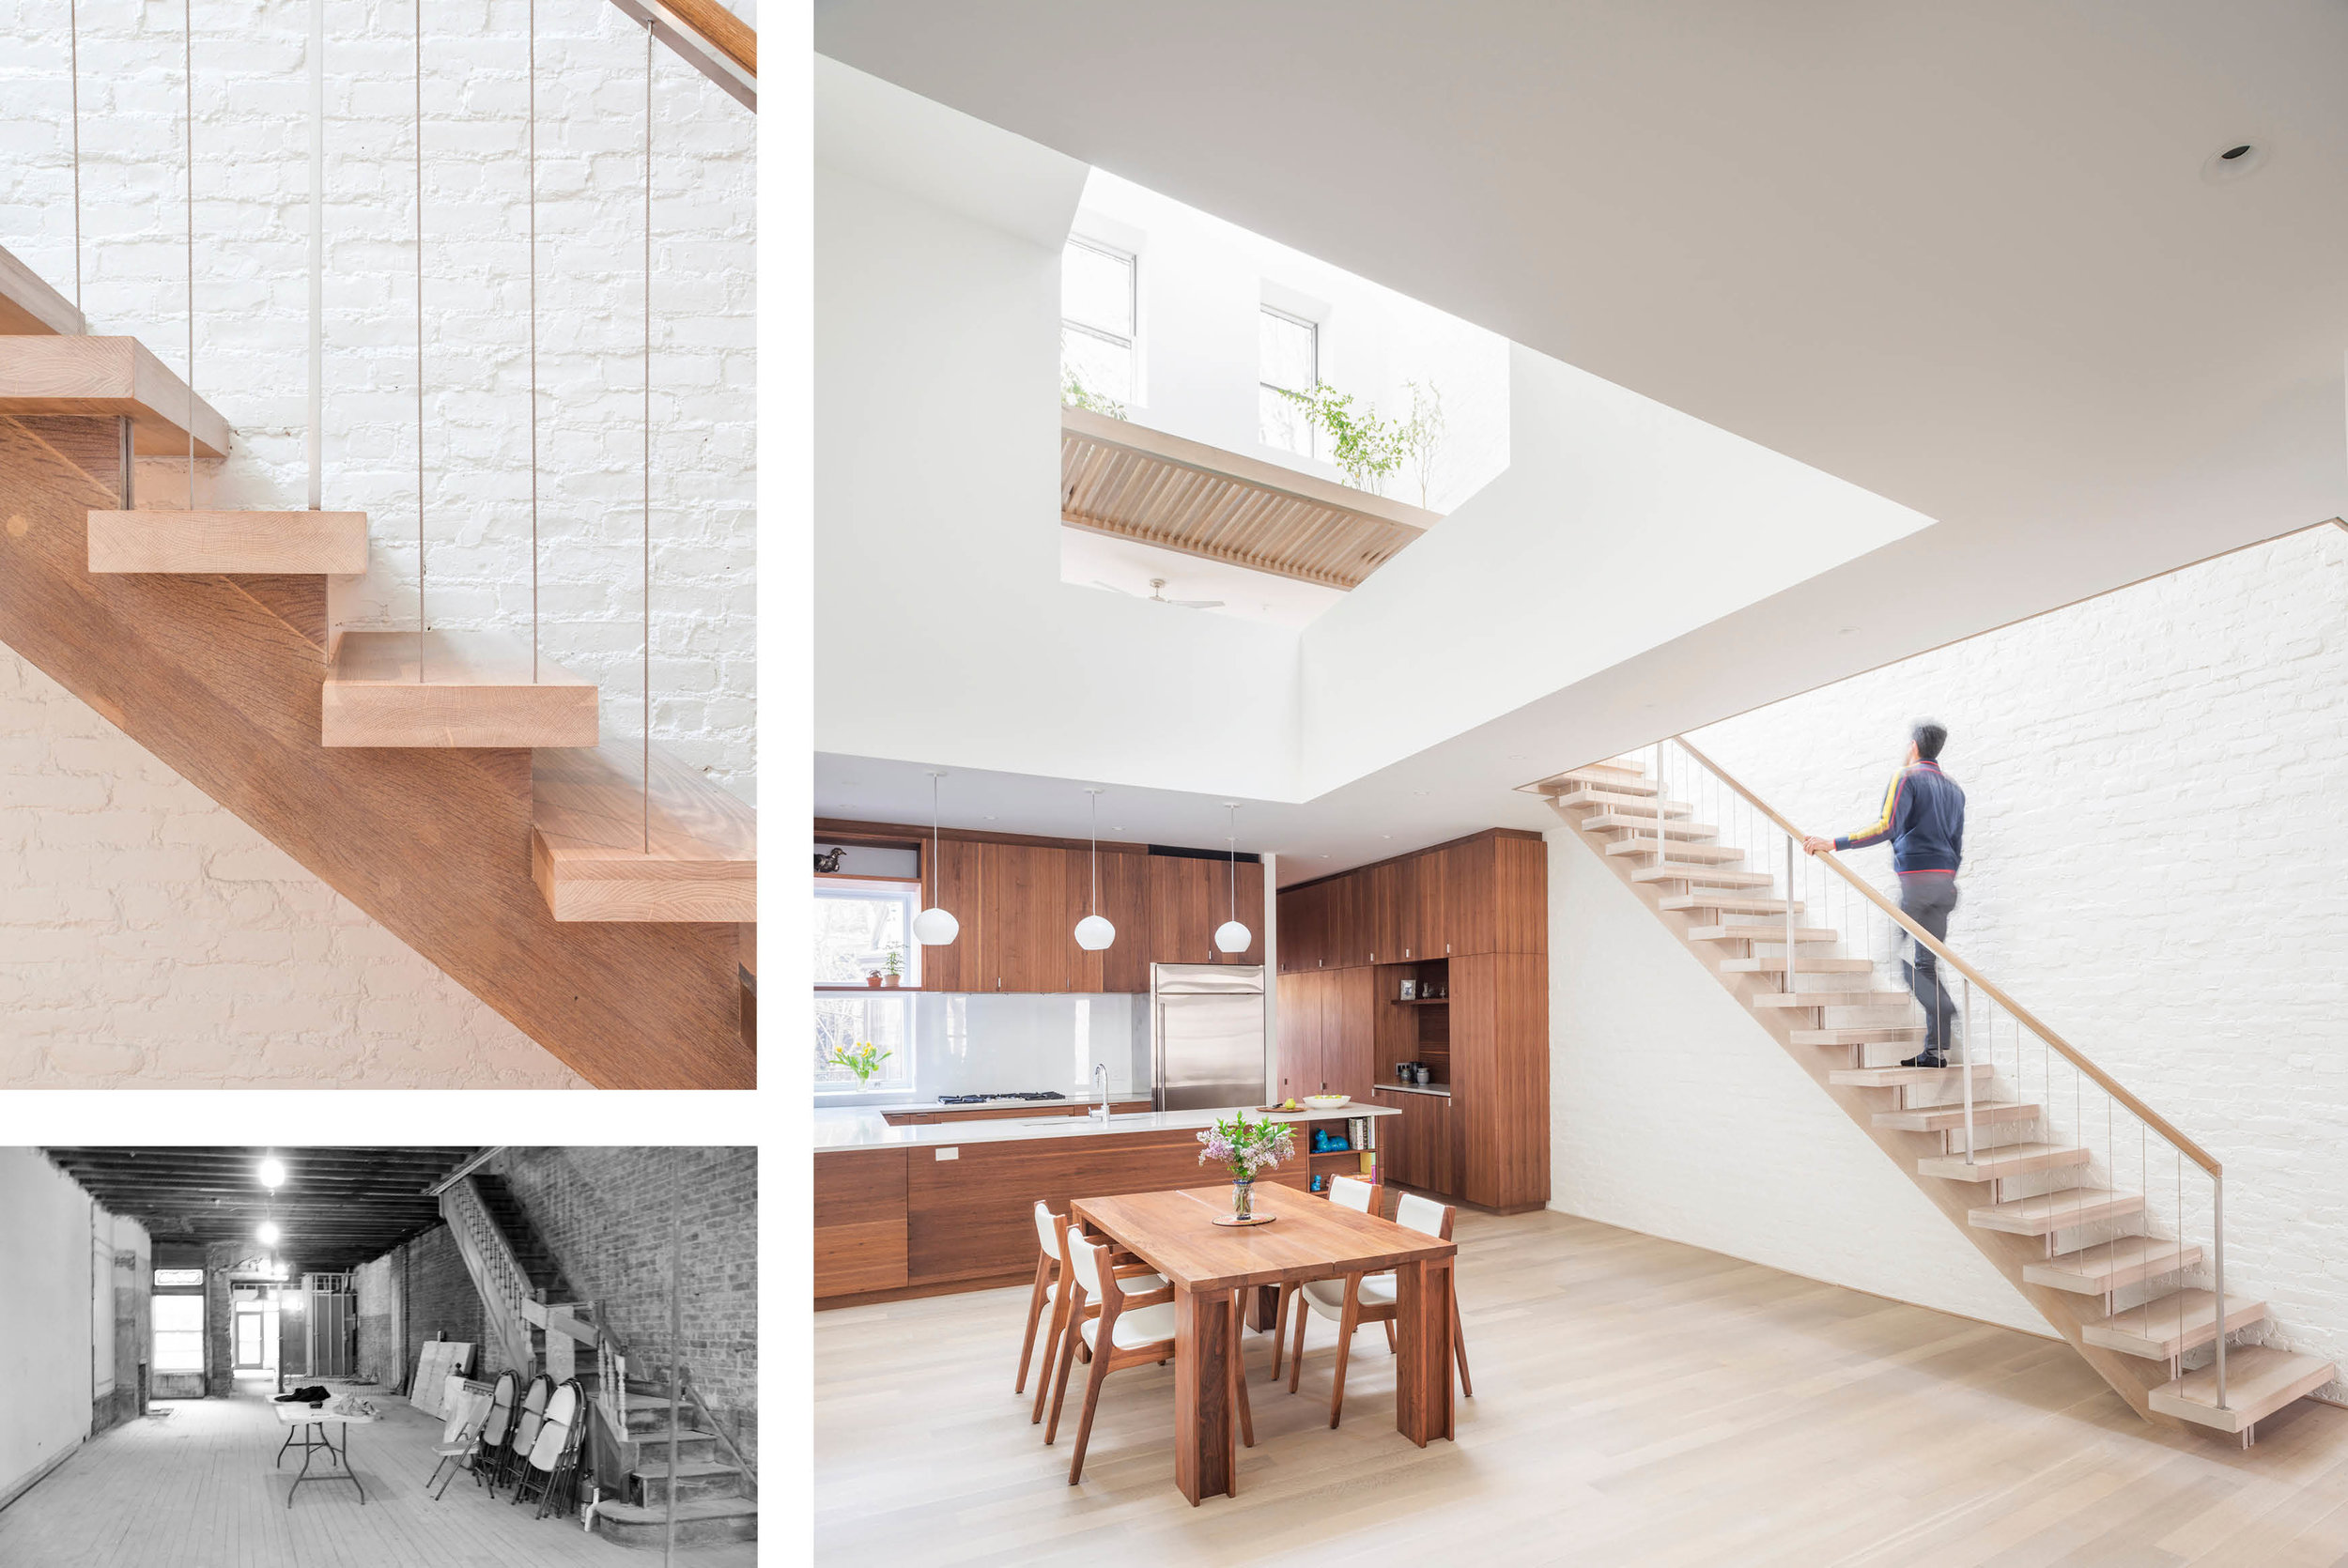 top left: Stair Detail bottom left: Existing 1st Floor right: Dining Room, Kitchen & Loft